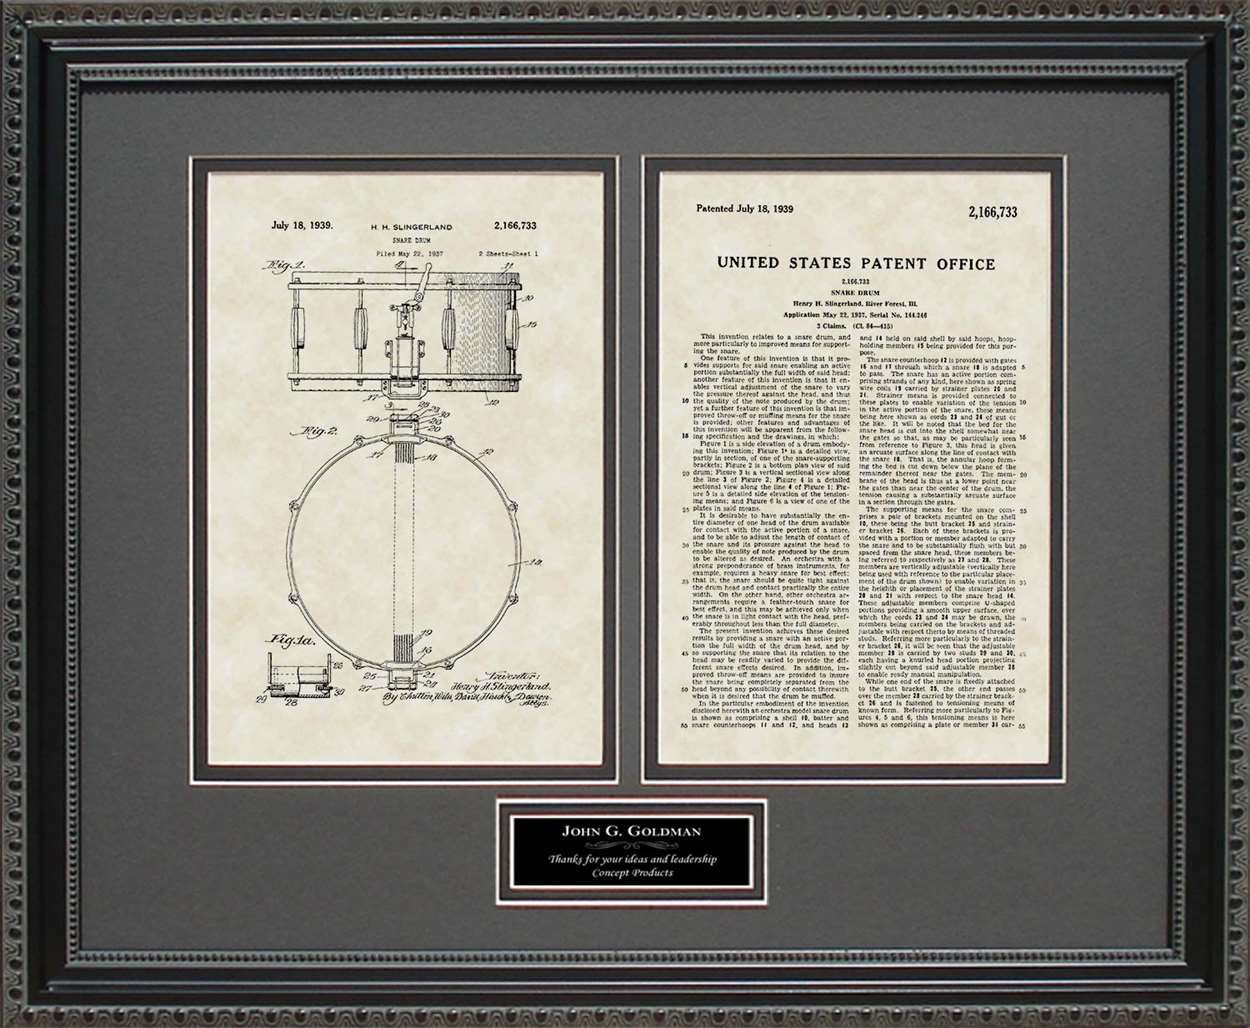 Personalized Snare Drum Patent, Art & Copy, Singerland, 1939